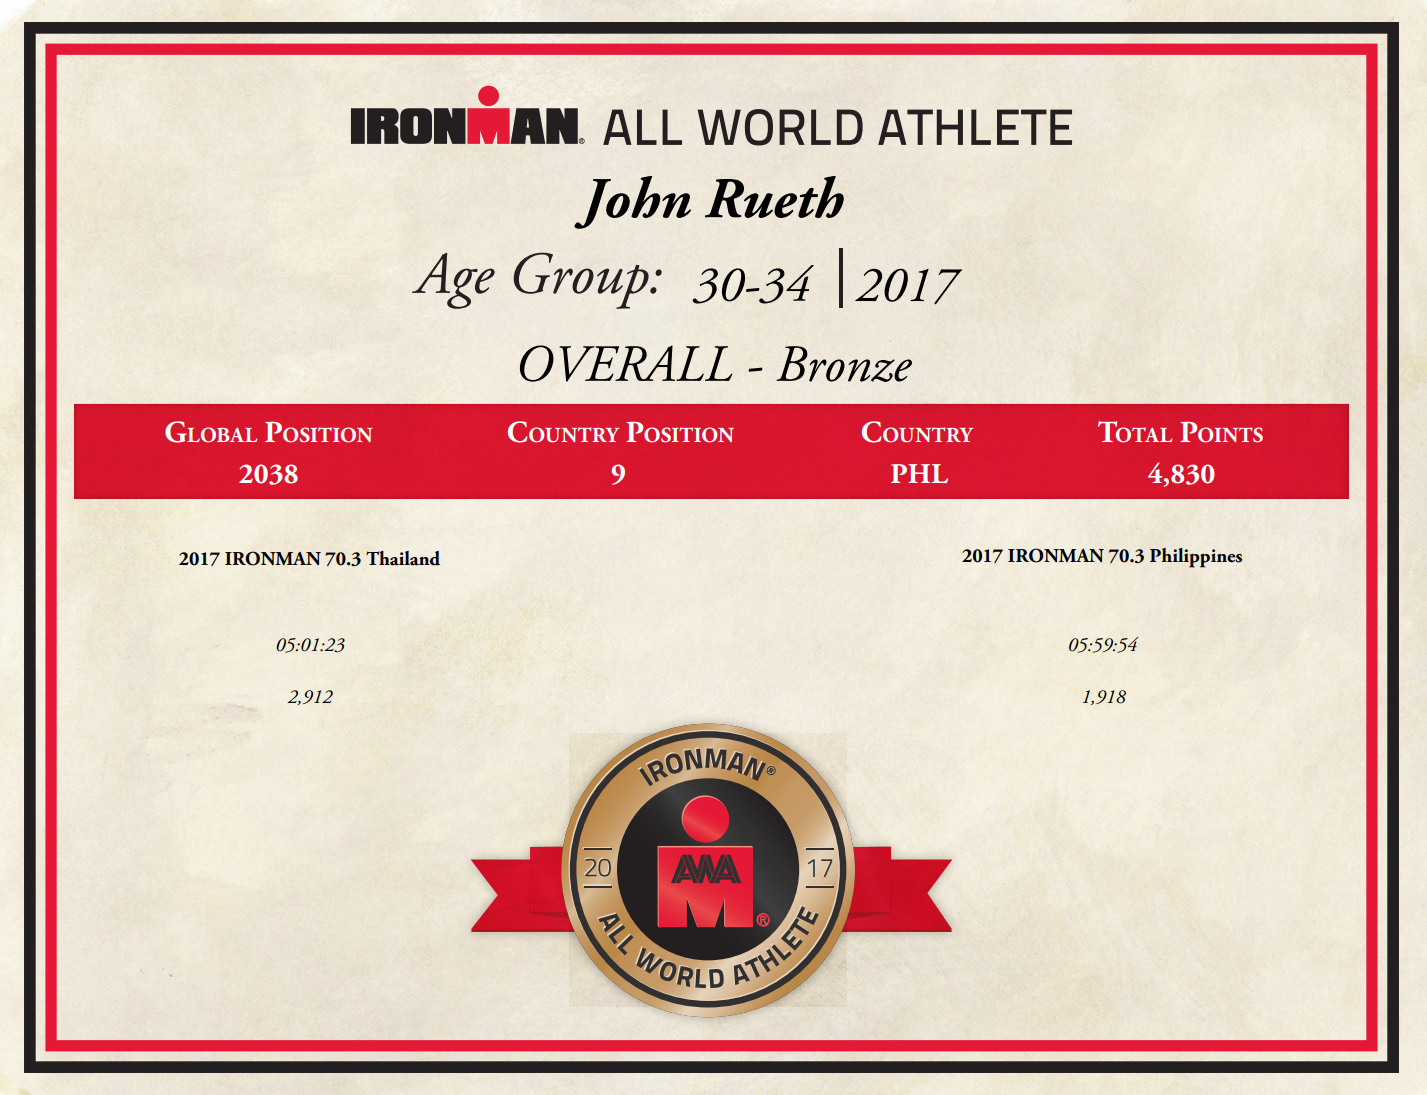 IRONMAN All World Athlete John S. Rueth